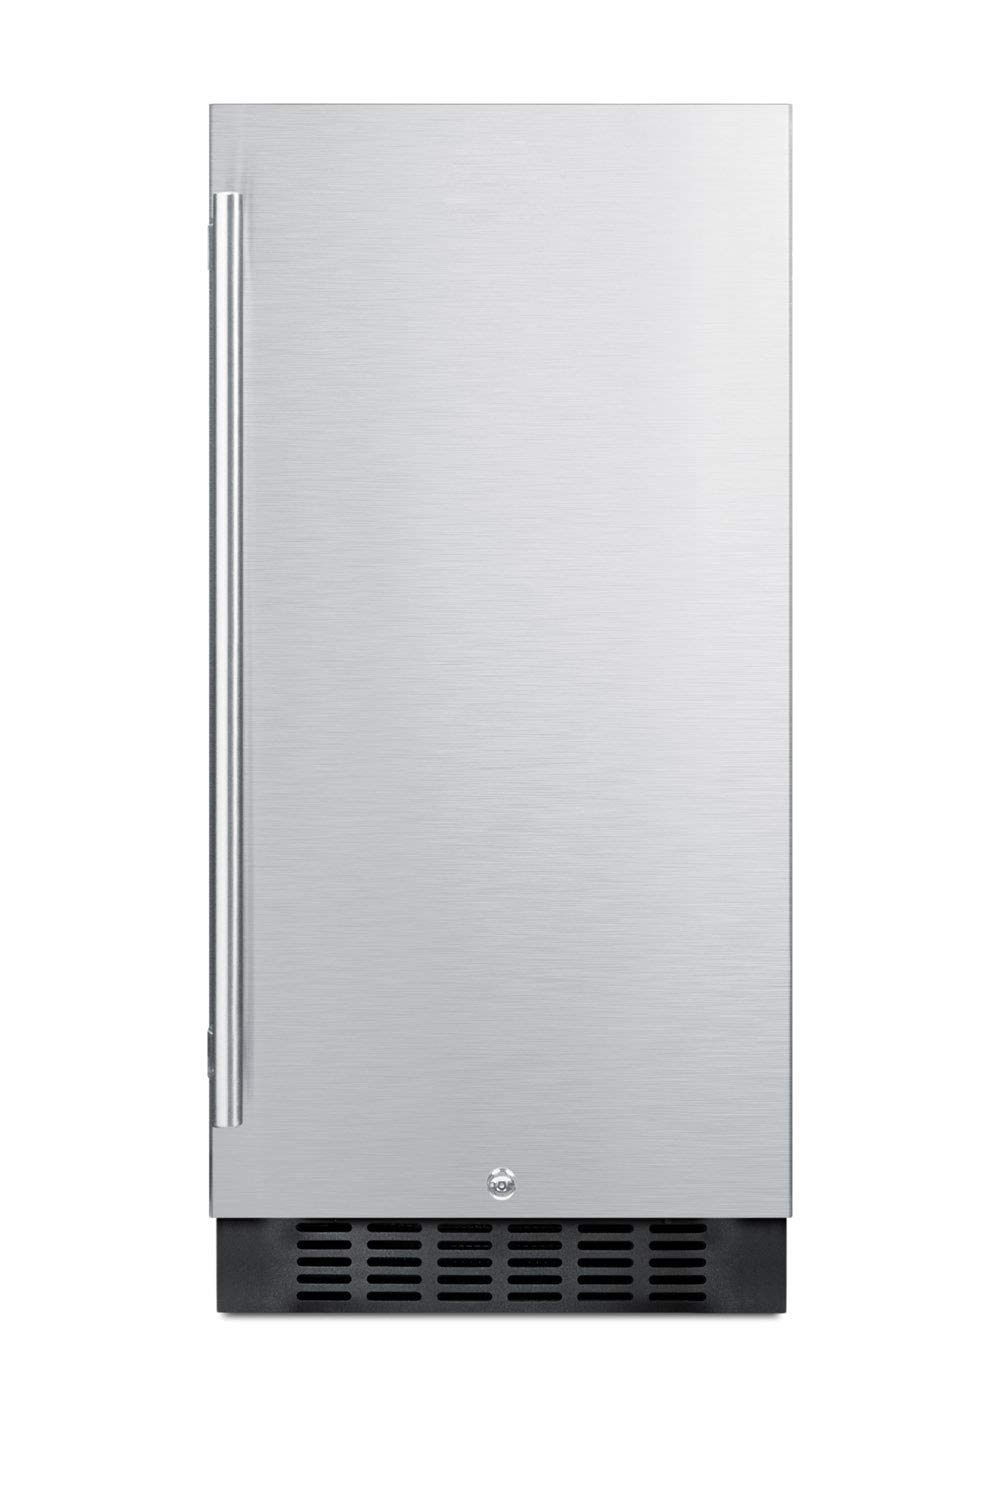 Summit ALR15BCSS 15 Inch Wide 2.2 Cu. Ft. Compact Refrigerator